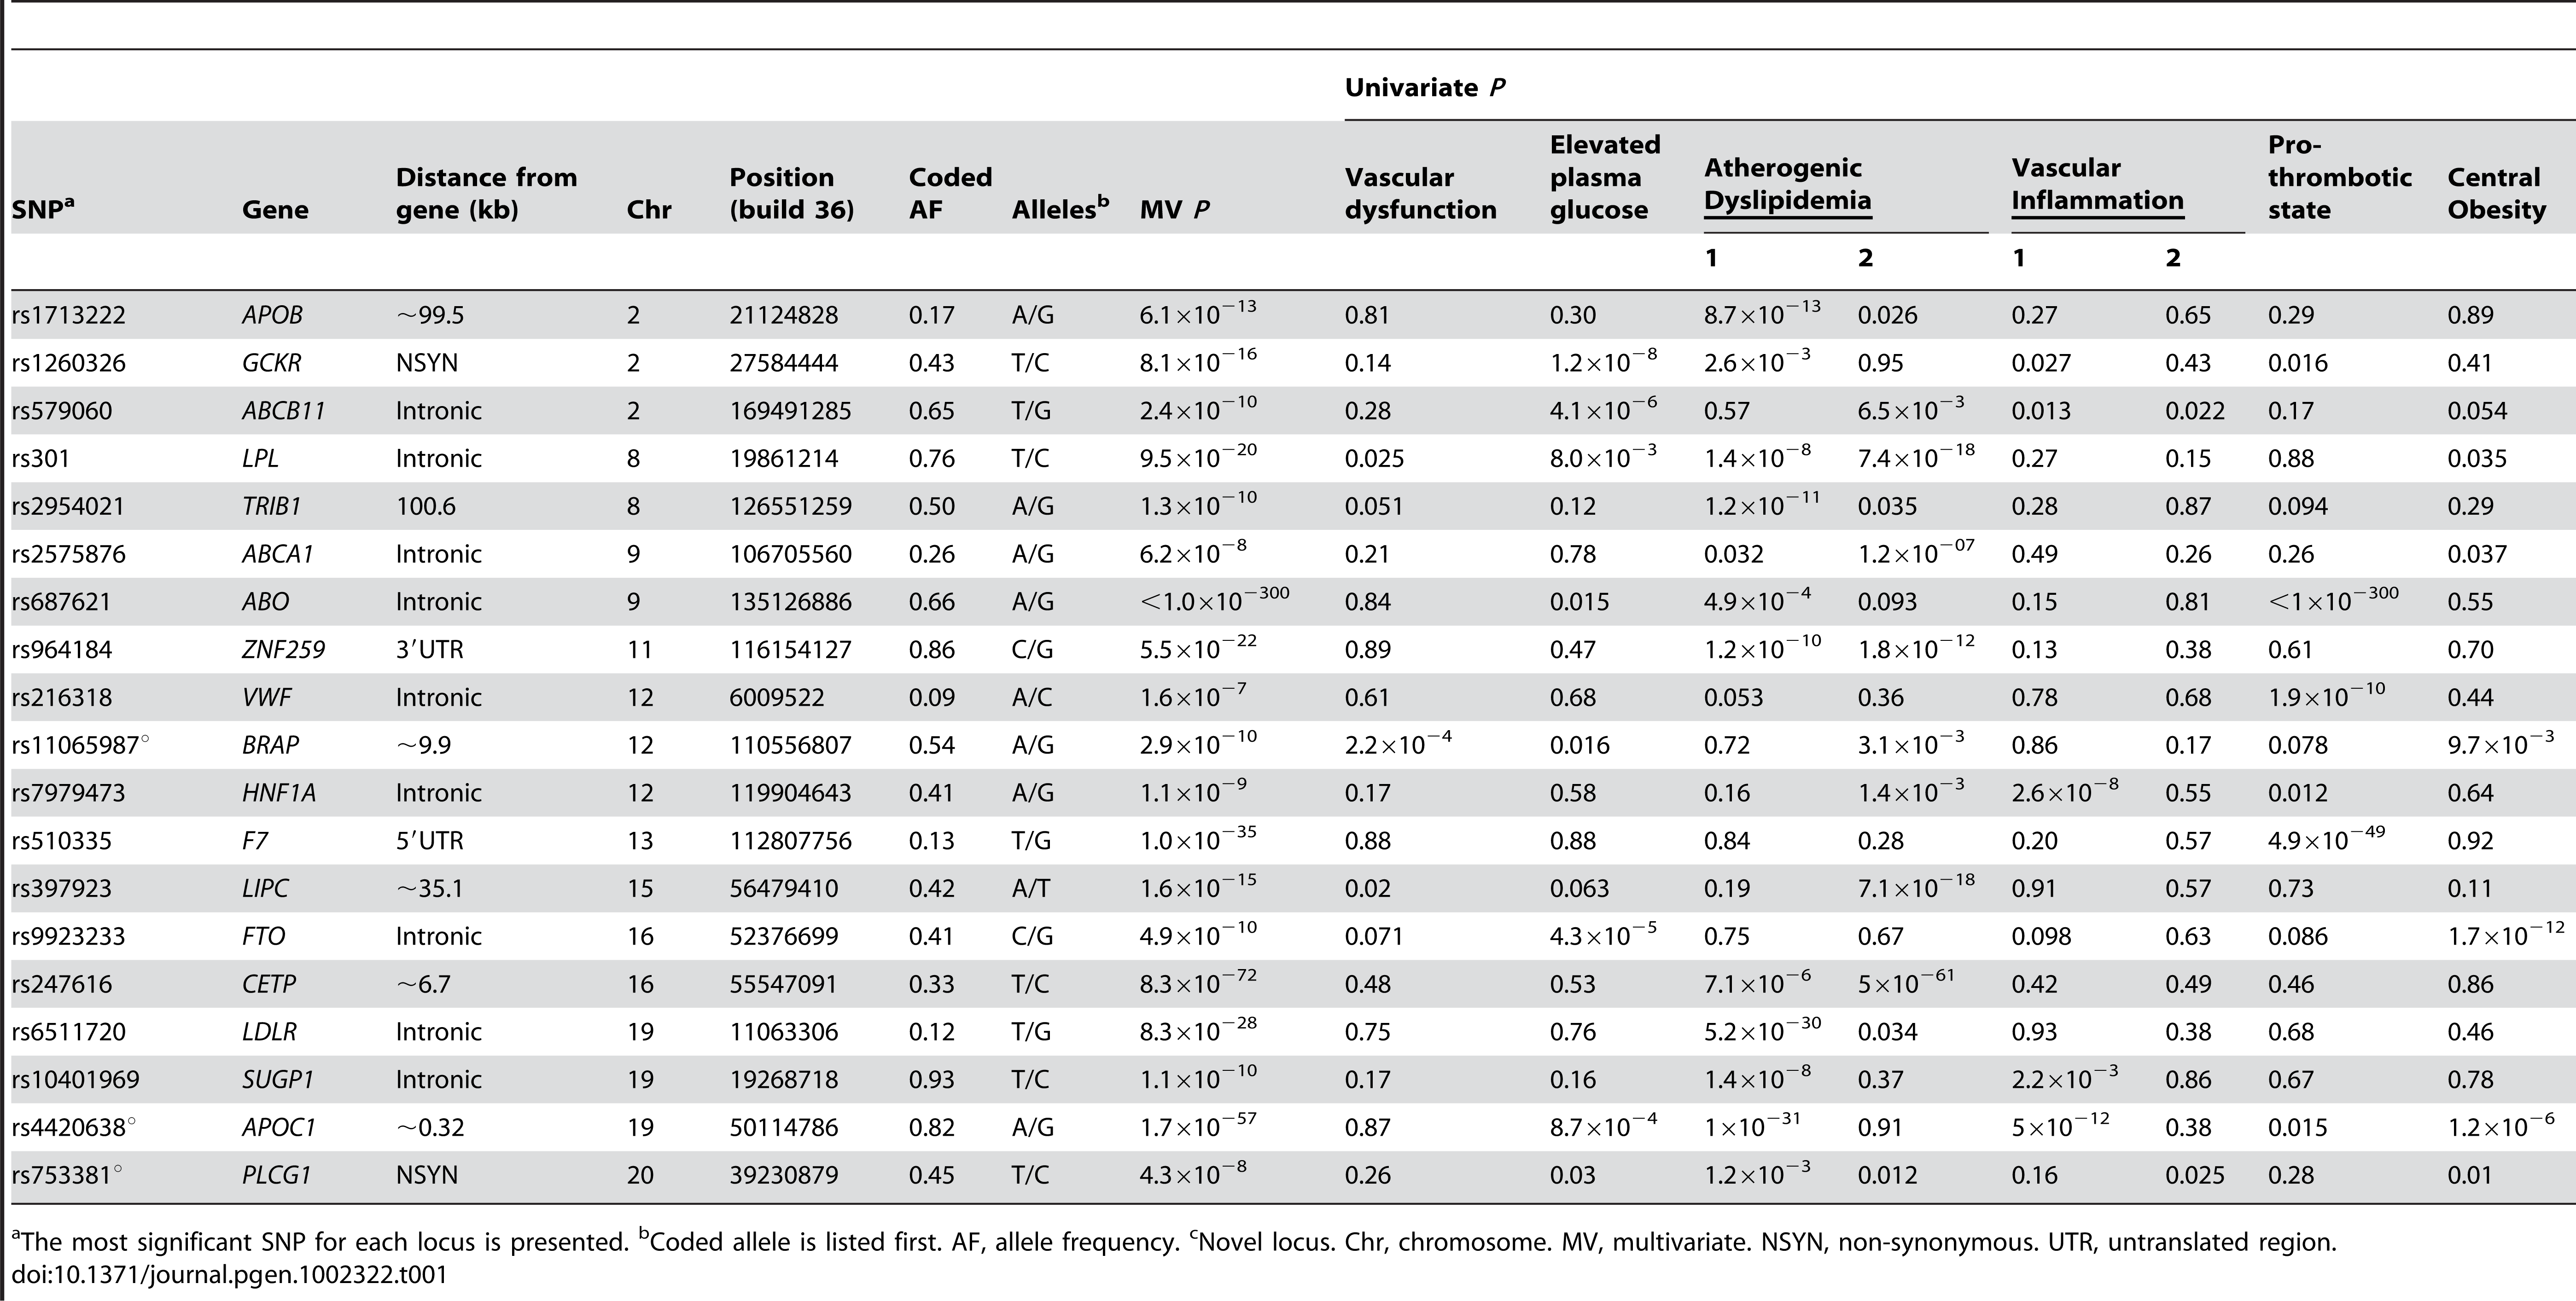 Associations for 19 known, confirmed, or possible new loci for metabolic syndrome trait dimensions in n=19,468 European Americans from five studies.